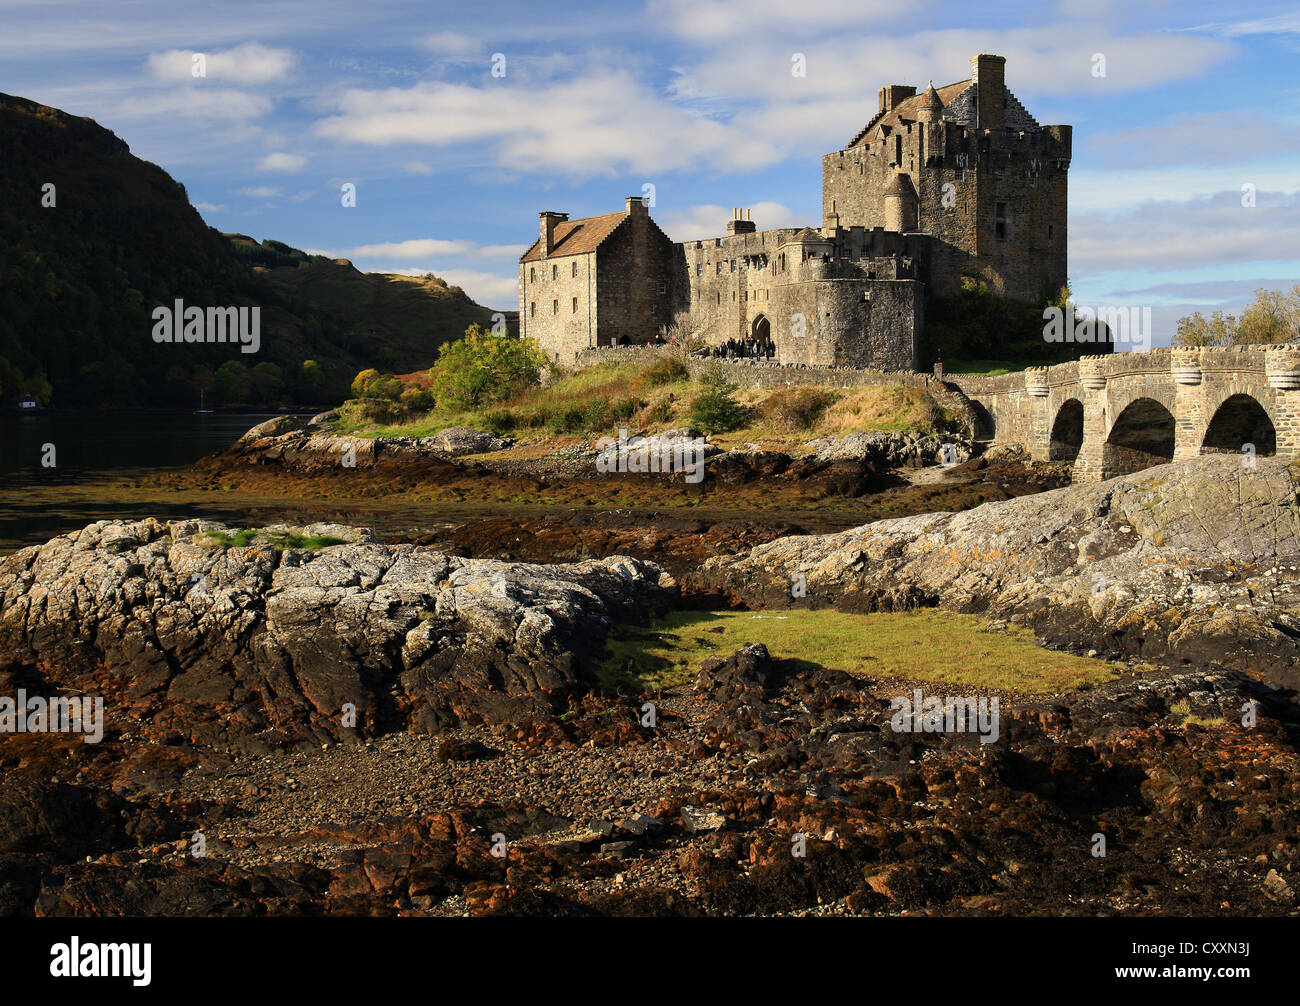 The much visited and picturesque castle of Eilean Donan lies on Loch Duich in the Scottish Highlands - Stock Image